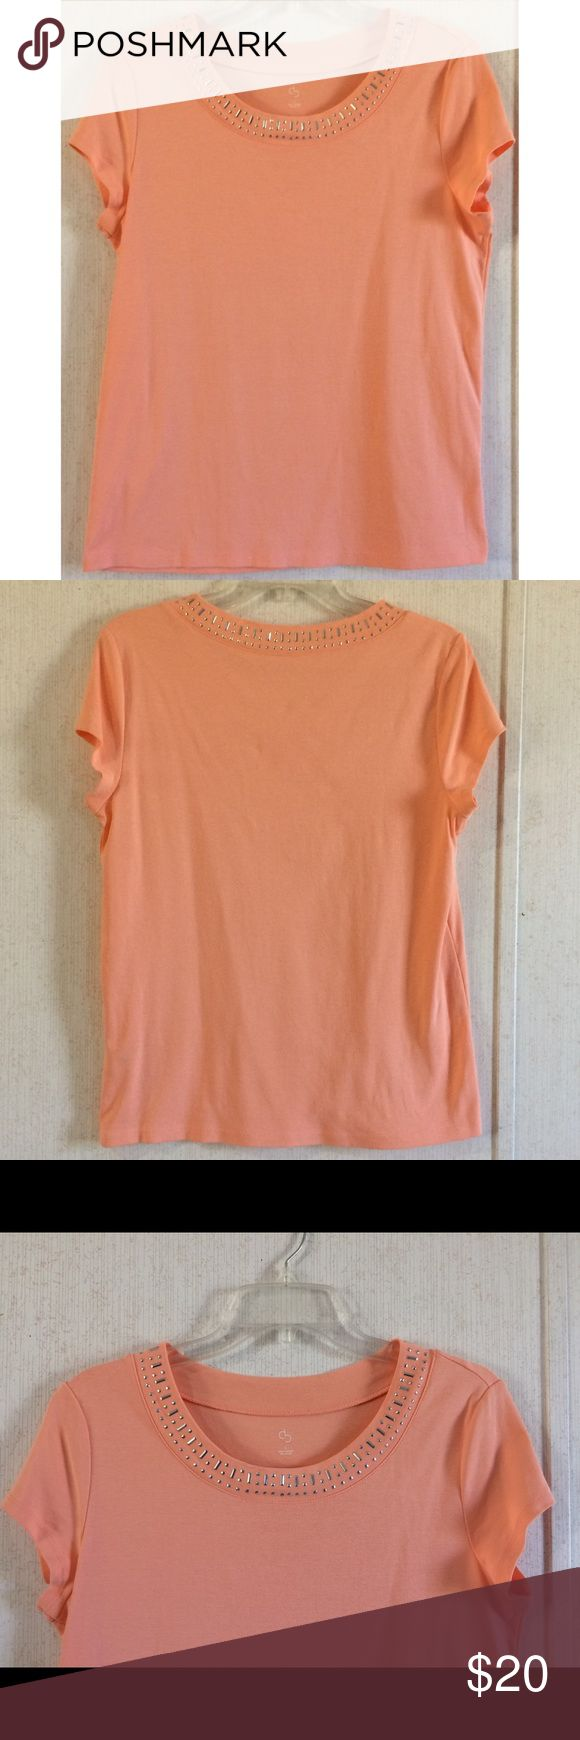 Dressbarn Embellished Coral Tee Excellent condition. Really nice Dressbarn tee shirt top. Coral pink/orange color. Sparkly silver jewels around the neckline. Soft 100% cotton knit material. Short sleeves, scoop neck. Size large. All offers welcome Dress Barn Tops Tees - Short Sleeve